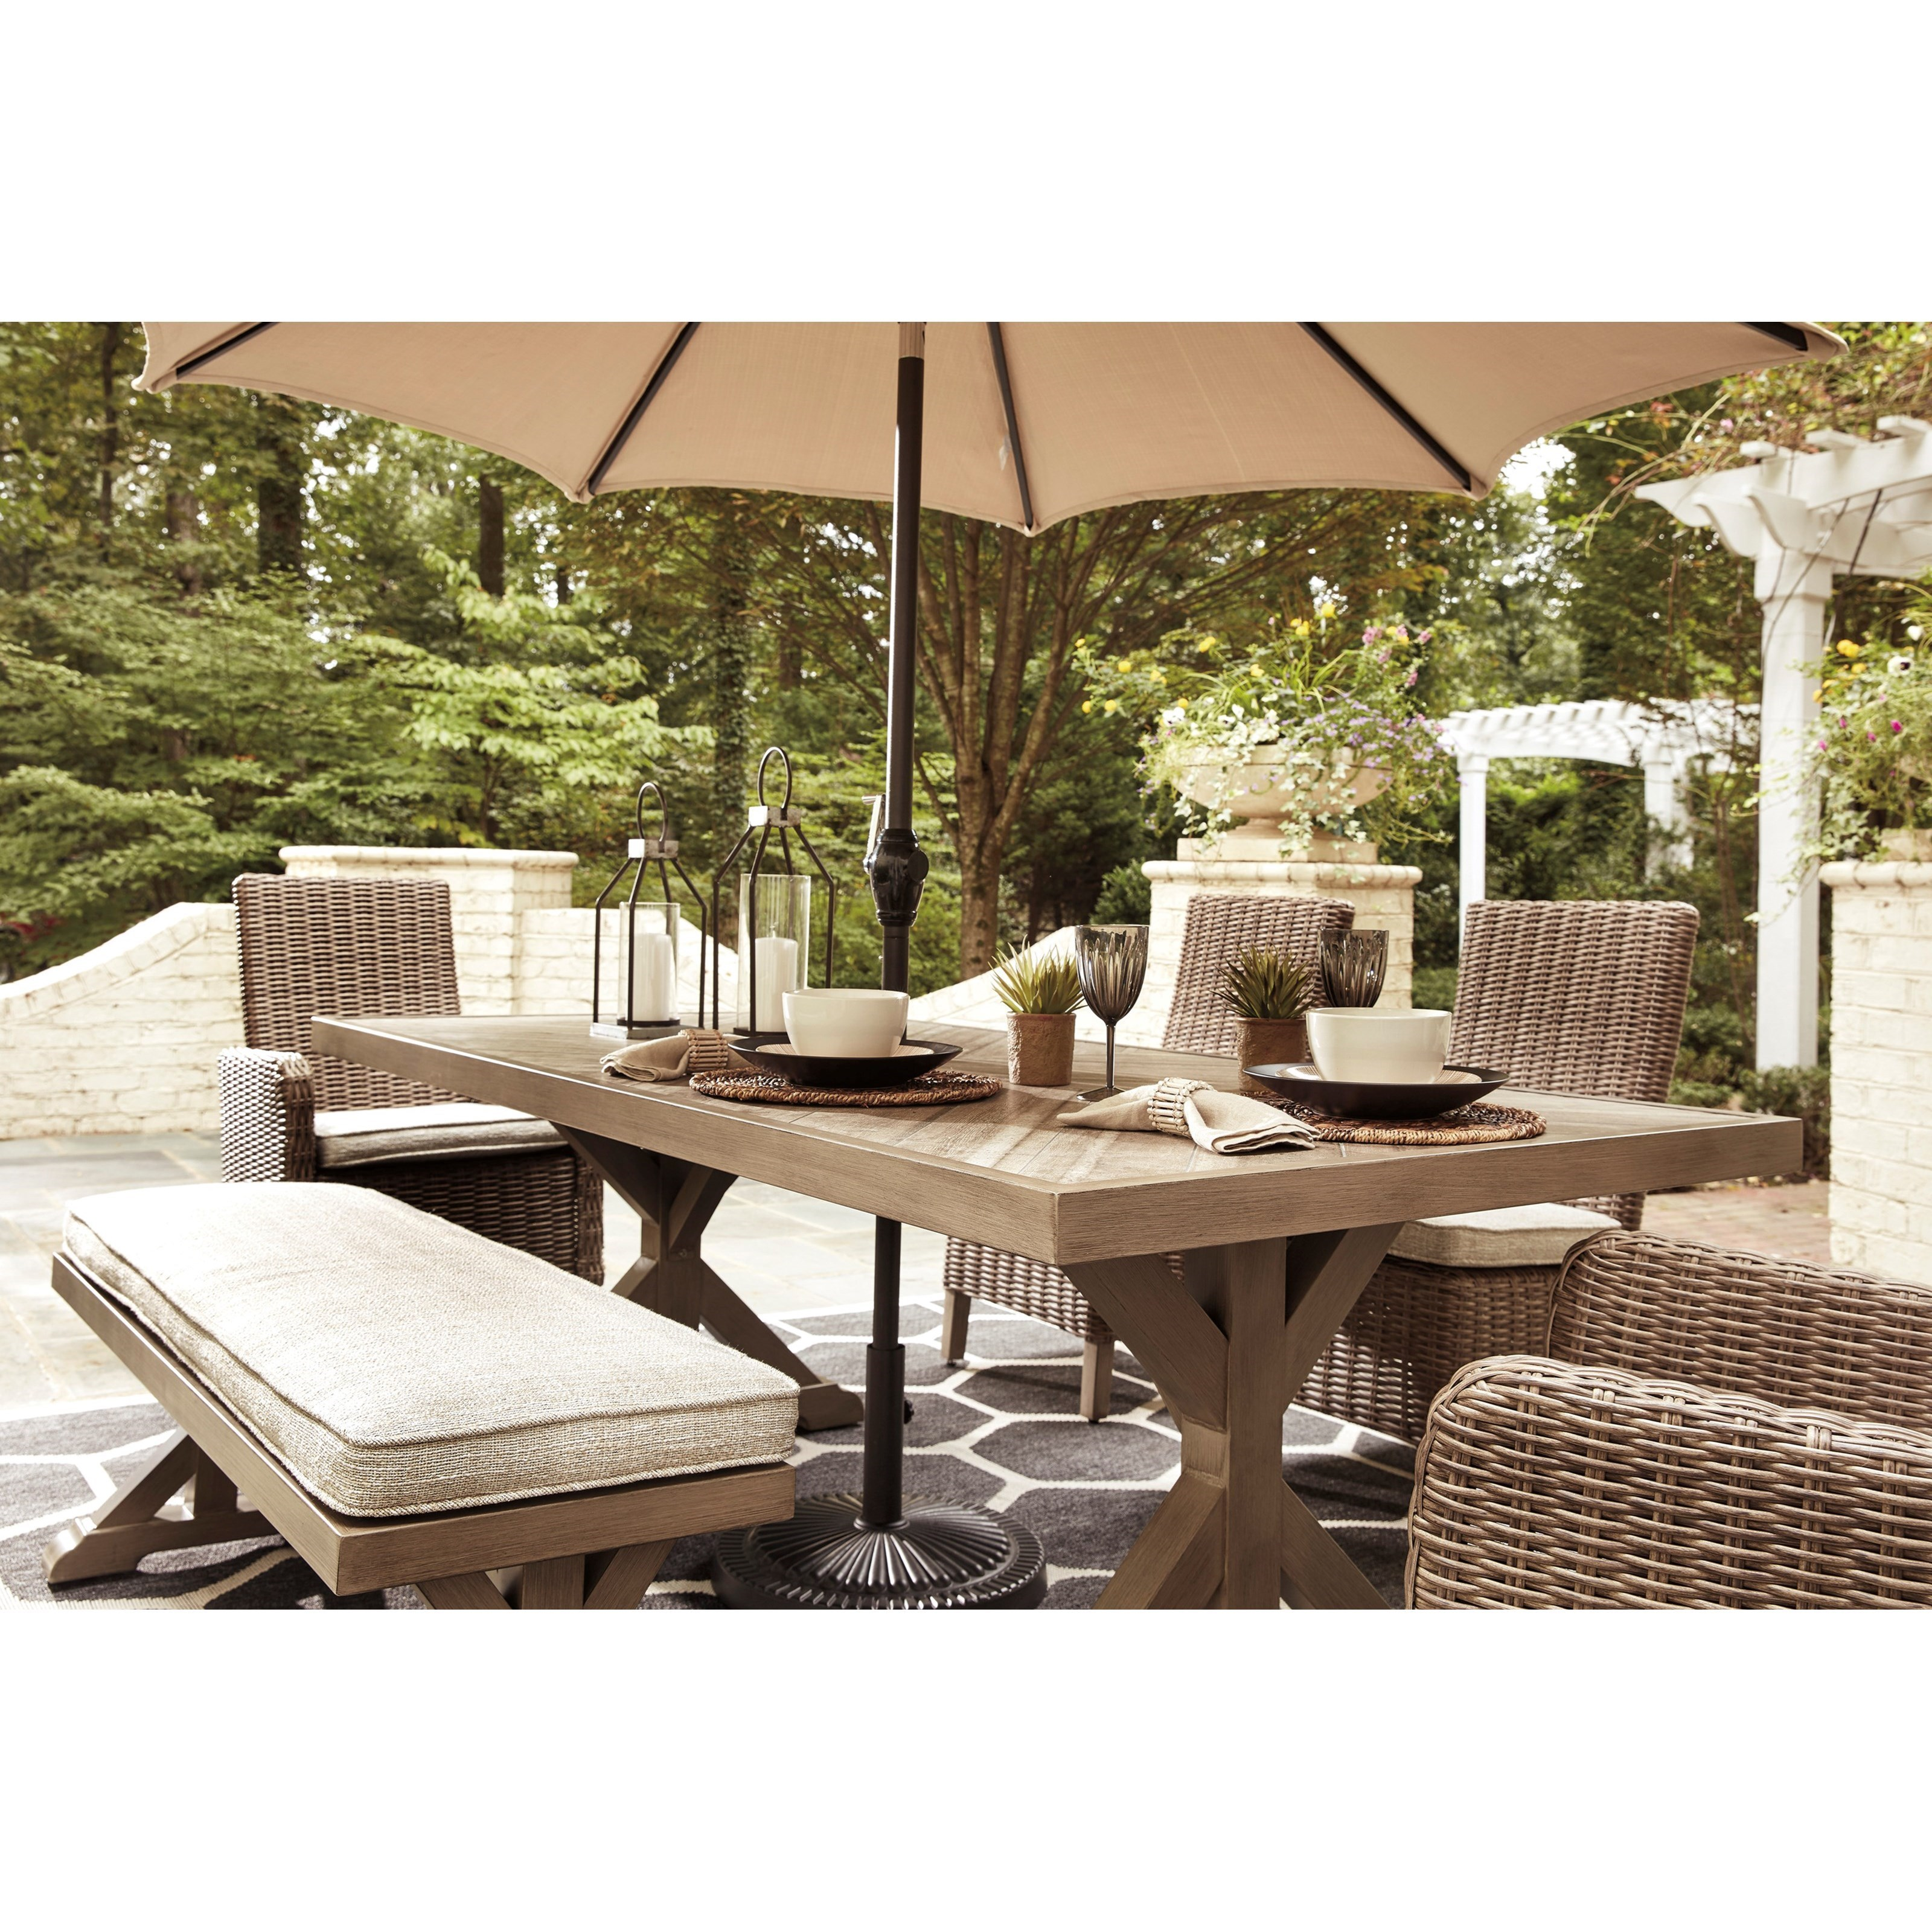 Umbrella Sold Separately; Signature Design By Ashley Beachcroft6 Piece Outdoor  Dining Set